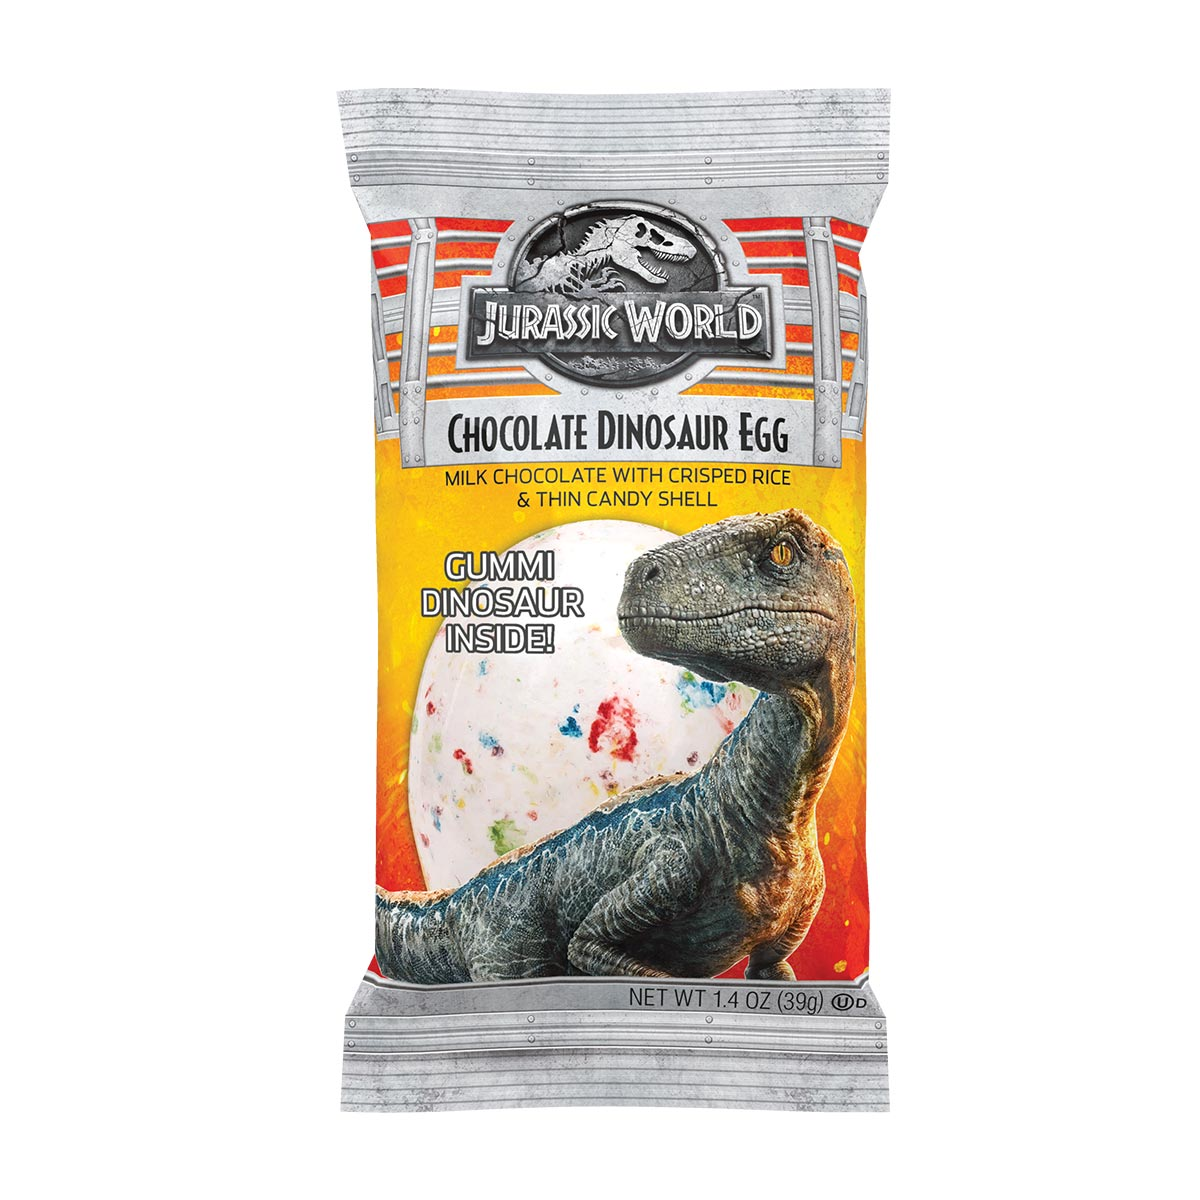 Jurassic World 2 Chocolate Dinosaur Egg 1.4 oz